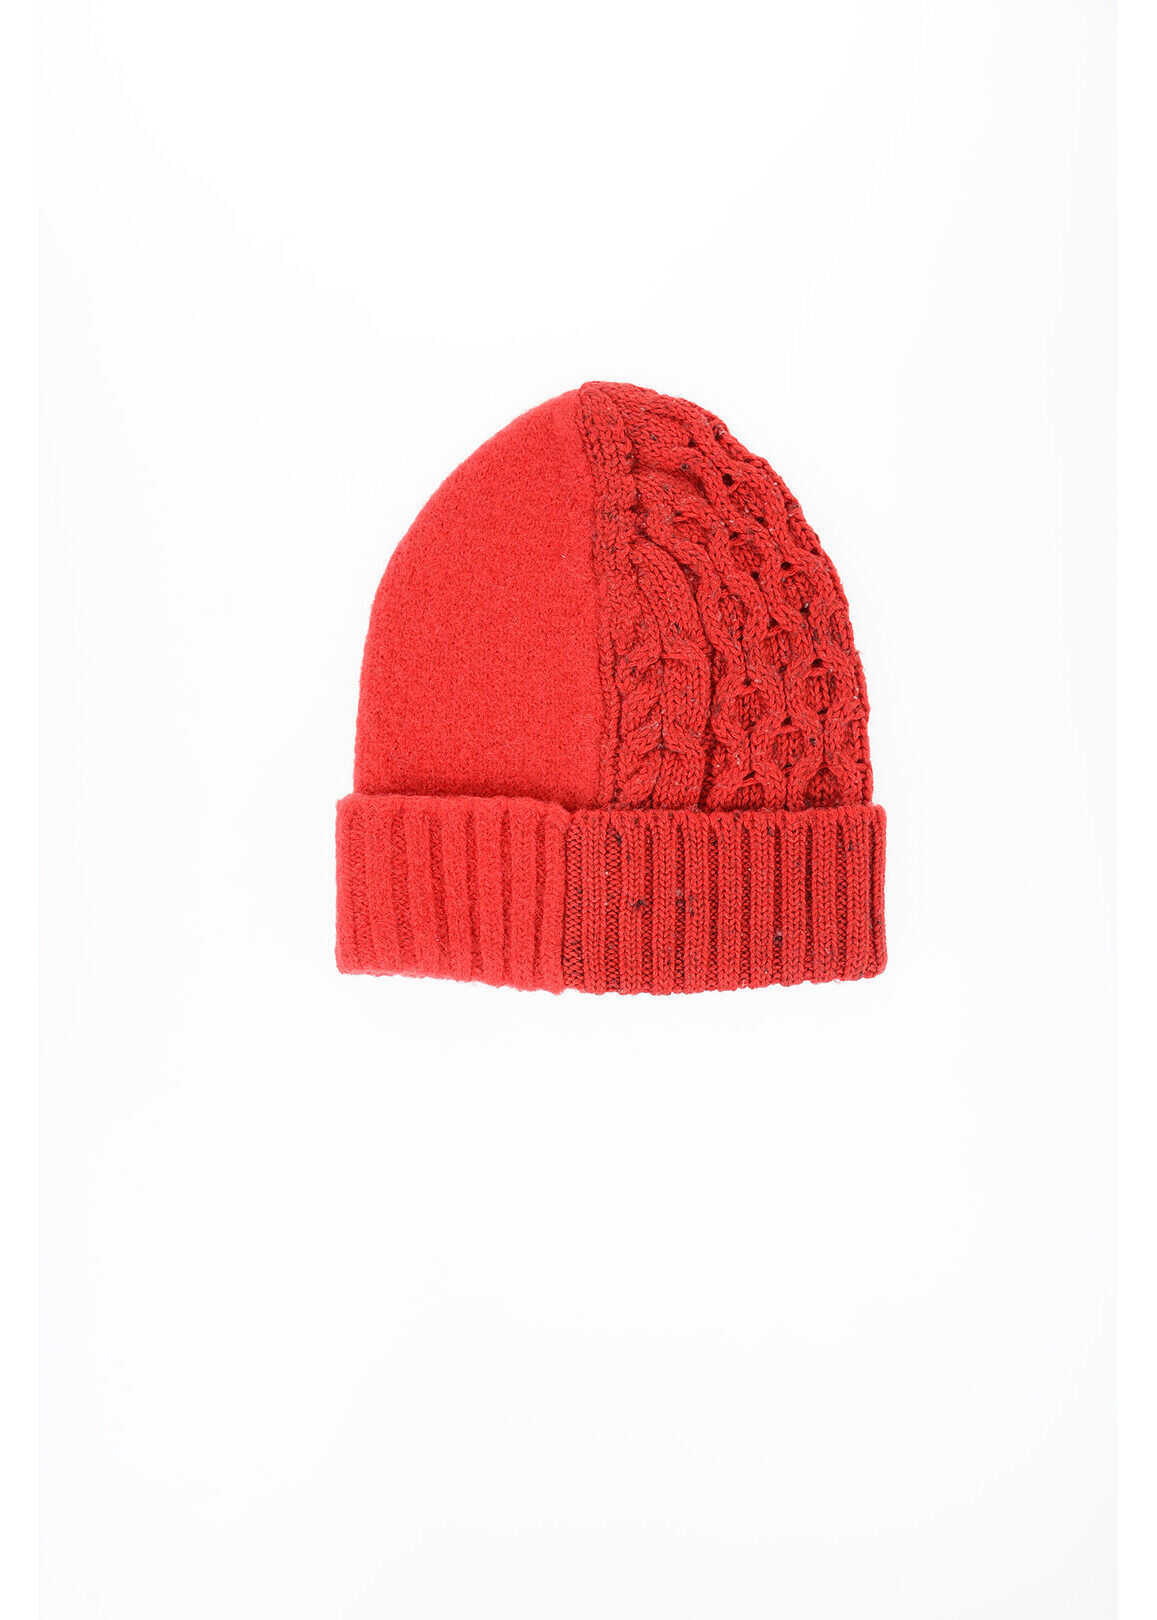 Maison Margiela MM4 Knitted Hat RED